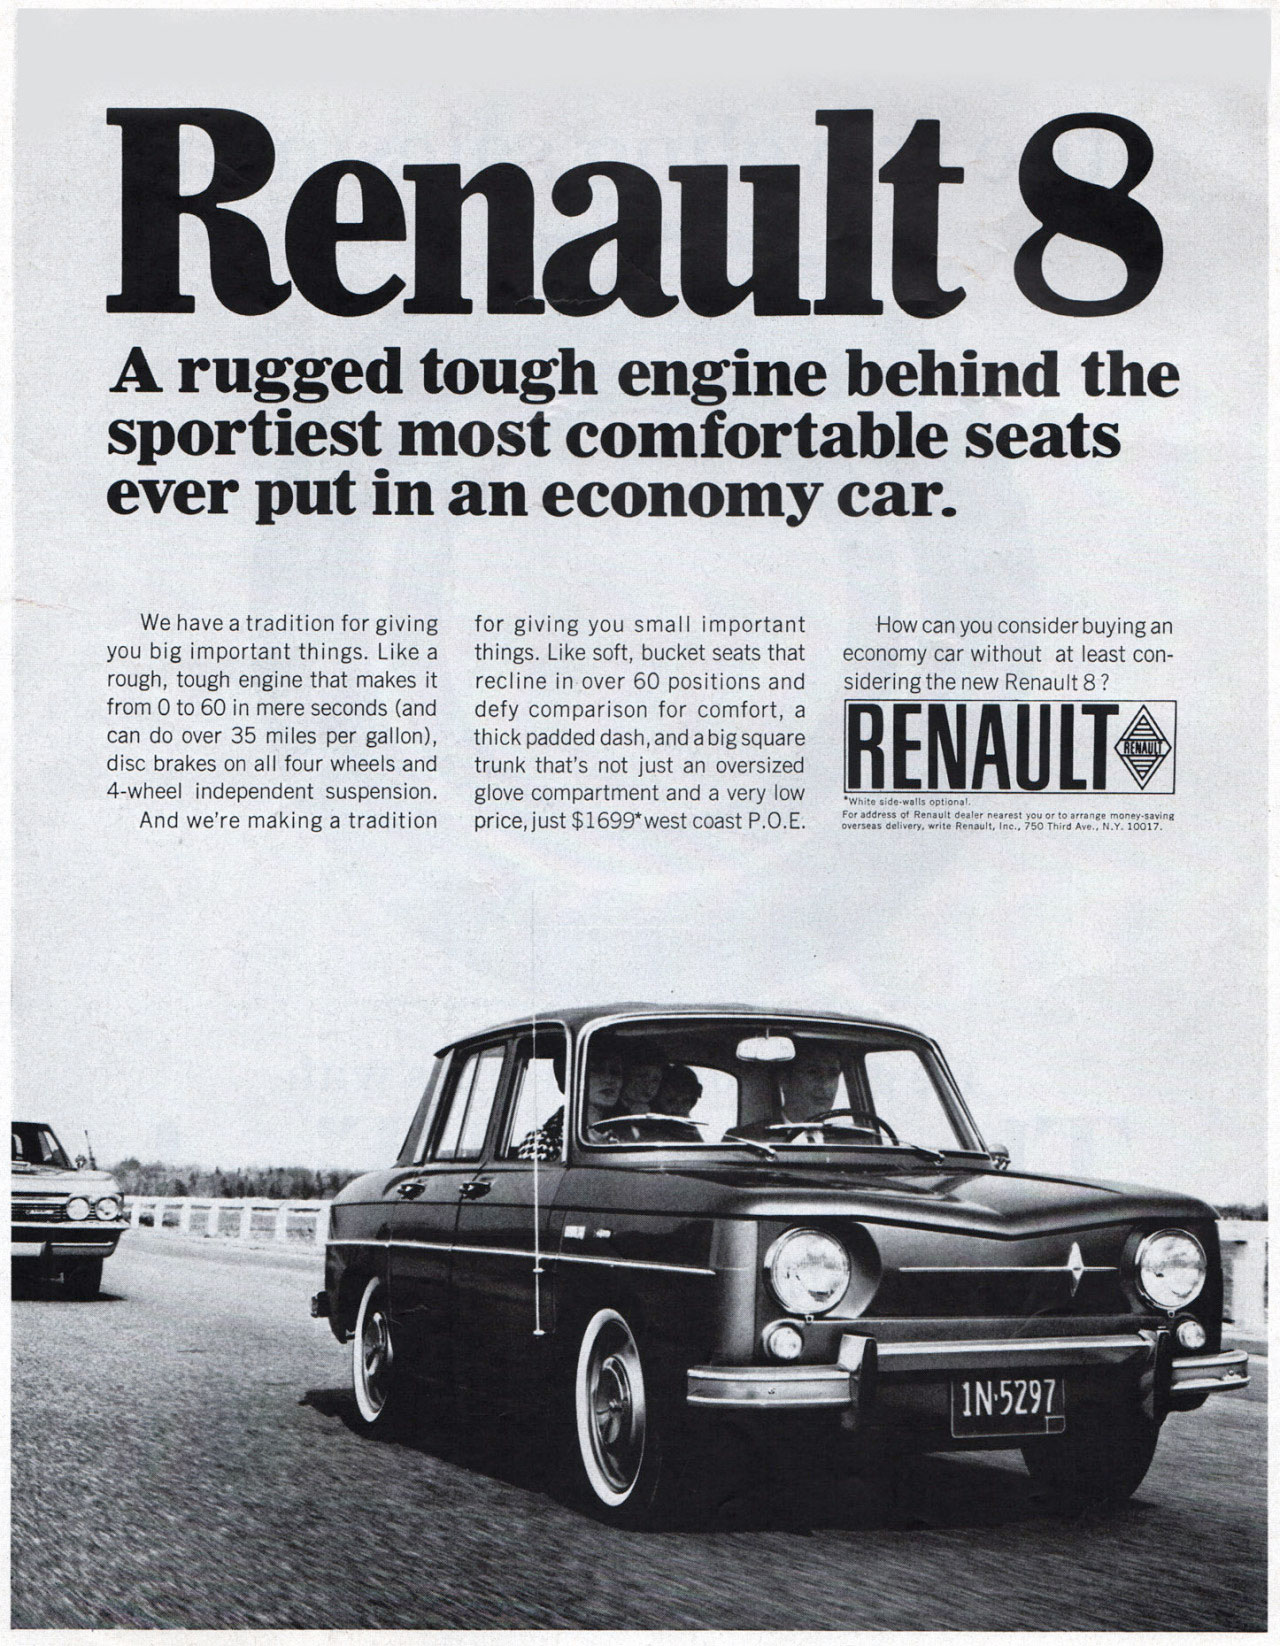 Renault 8 A rugged tough engine behind the sportiest most comfortable seats ever put in an economy car.  We have a tradition for giving you big important things. Like a rough, tough engine that makes it from 0 to 60 in mere seconds (and can do over 35 miles per gallon), disc brakes on all four wheels and 4-wheel independent suspension. And we're making a tradition  for giving you small important things. Like soft, bucket seats that recline in over 60 positions and defy comparison for comfort, a thick padded dash, and a big square trunk that's not just an oversized glove compartment and a very low price, just $1699*west coast P.O. E.  How can you consider buying an economy car without at least con-sidering the new Renault 8 ?  RENAULT cut.  For aooross W Renault oealer nearest you or to arrange money-saving overseas Celivery, write Renault, Ine., 750 TnirO Ara., N.Y. 10017.